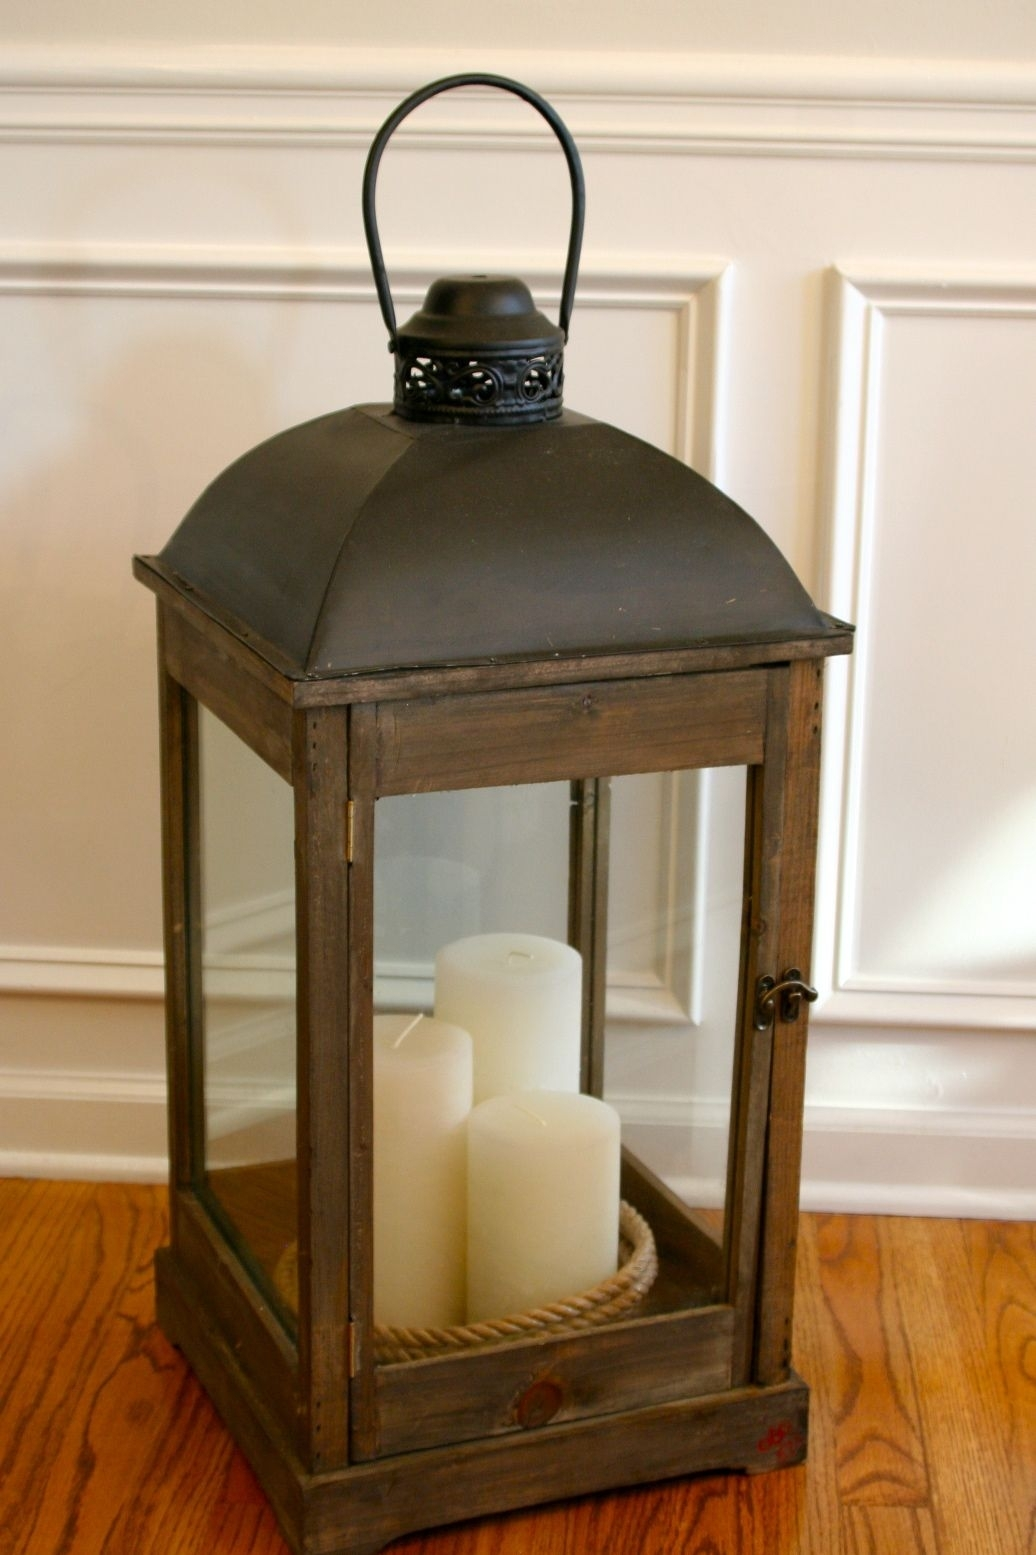 I Like The Candle Grouping | Decorations To Make | Pinterest with regard to Outdoor Oversized Lanterns (Image 8 of 20)